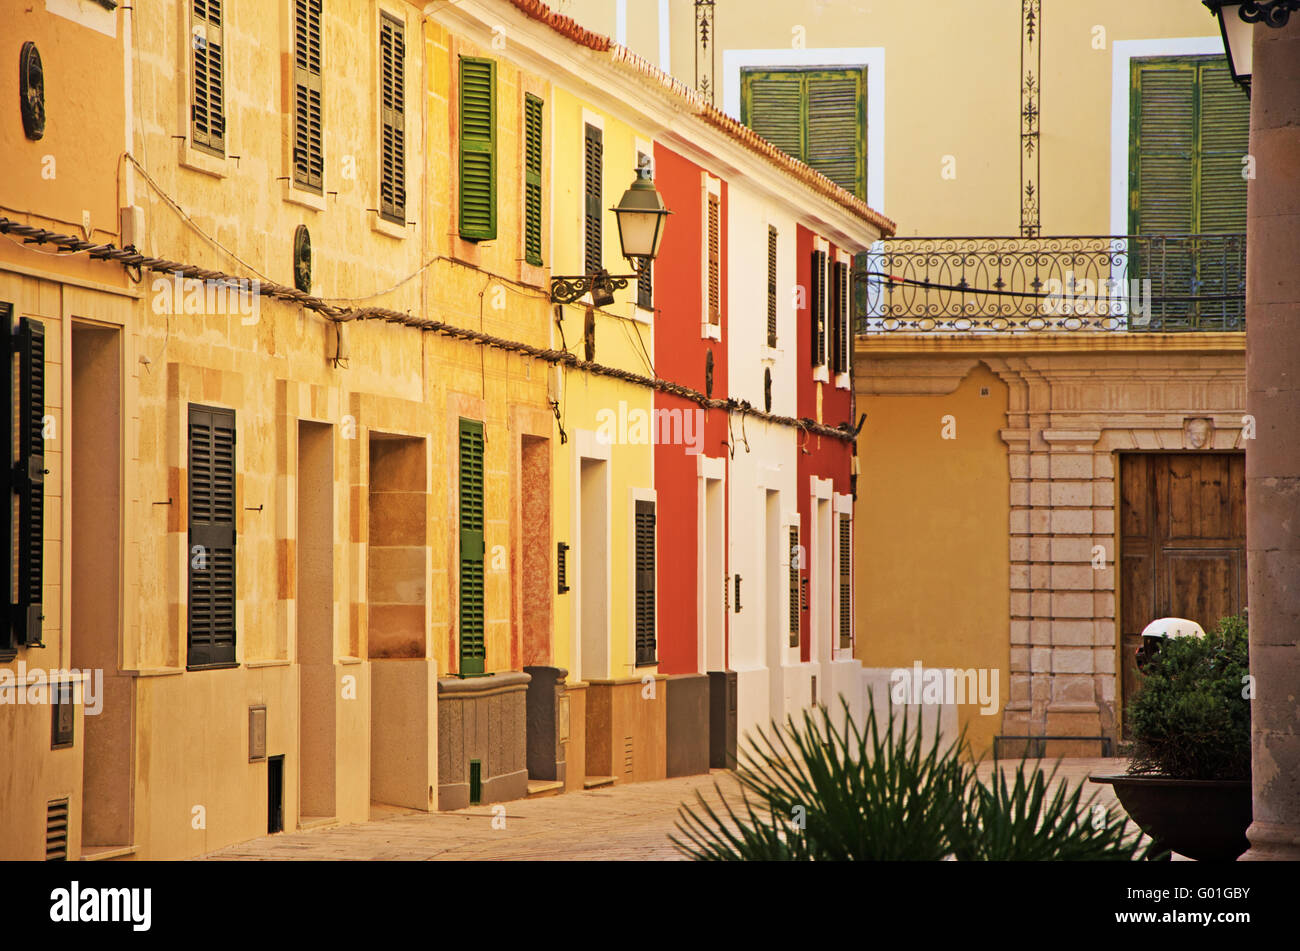 Menorca, Balearic Islands, Spain, Europe: palaces and building in the streets and alleys of the old town of Ciutadella - Stock Image